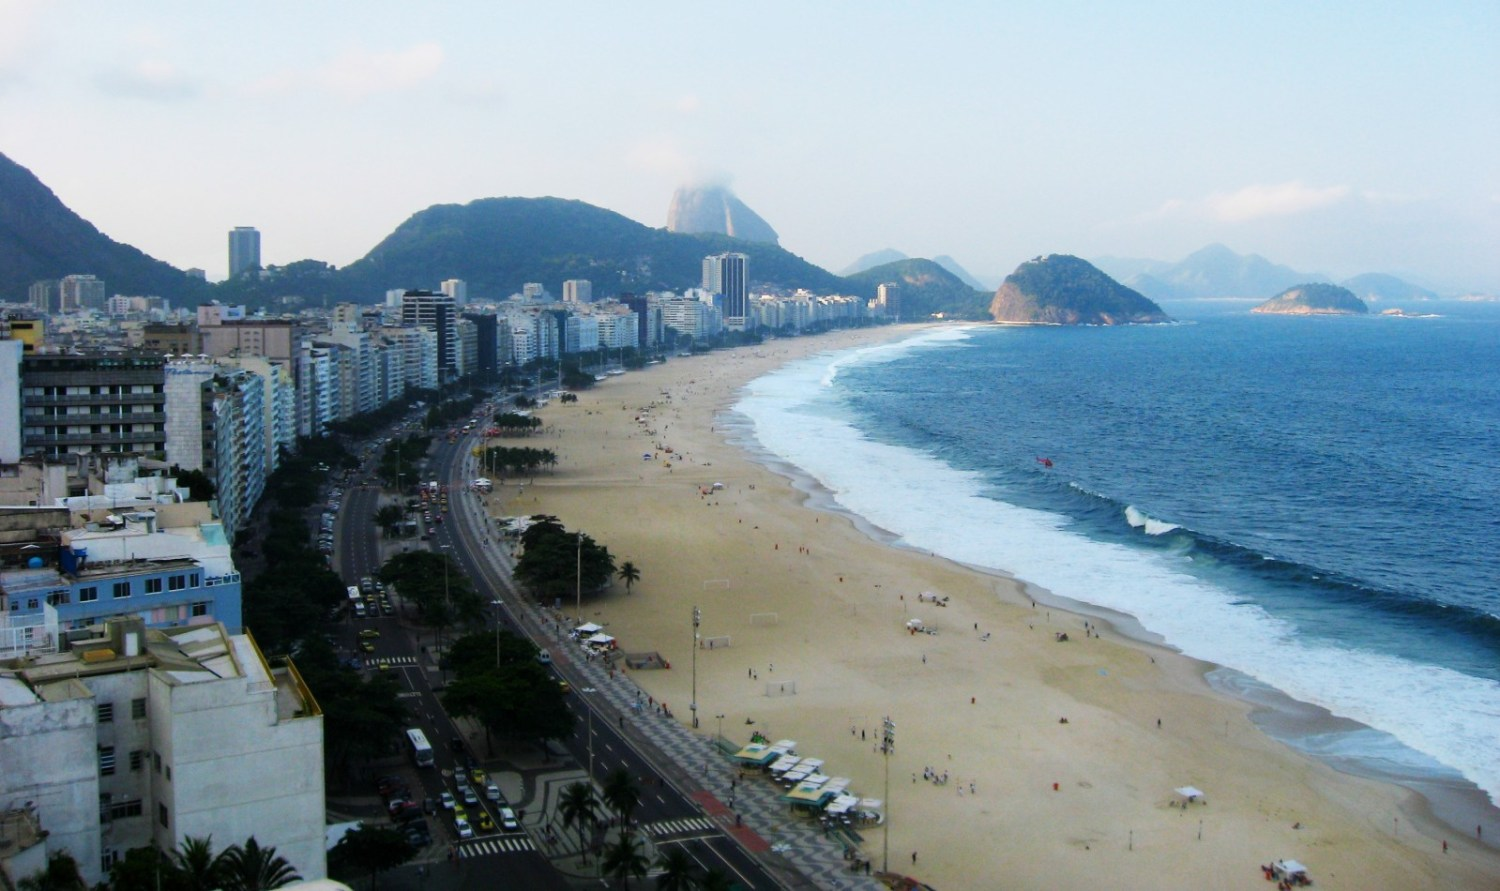 Water quality challenges in Rio have also sparked dialogue about how to tackle pollution in other cities around the world contending with the effects of rapid urbanization. Photo courtesy José Murilo via Flickr Creative Commons